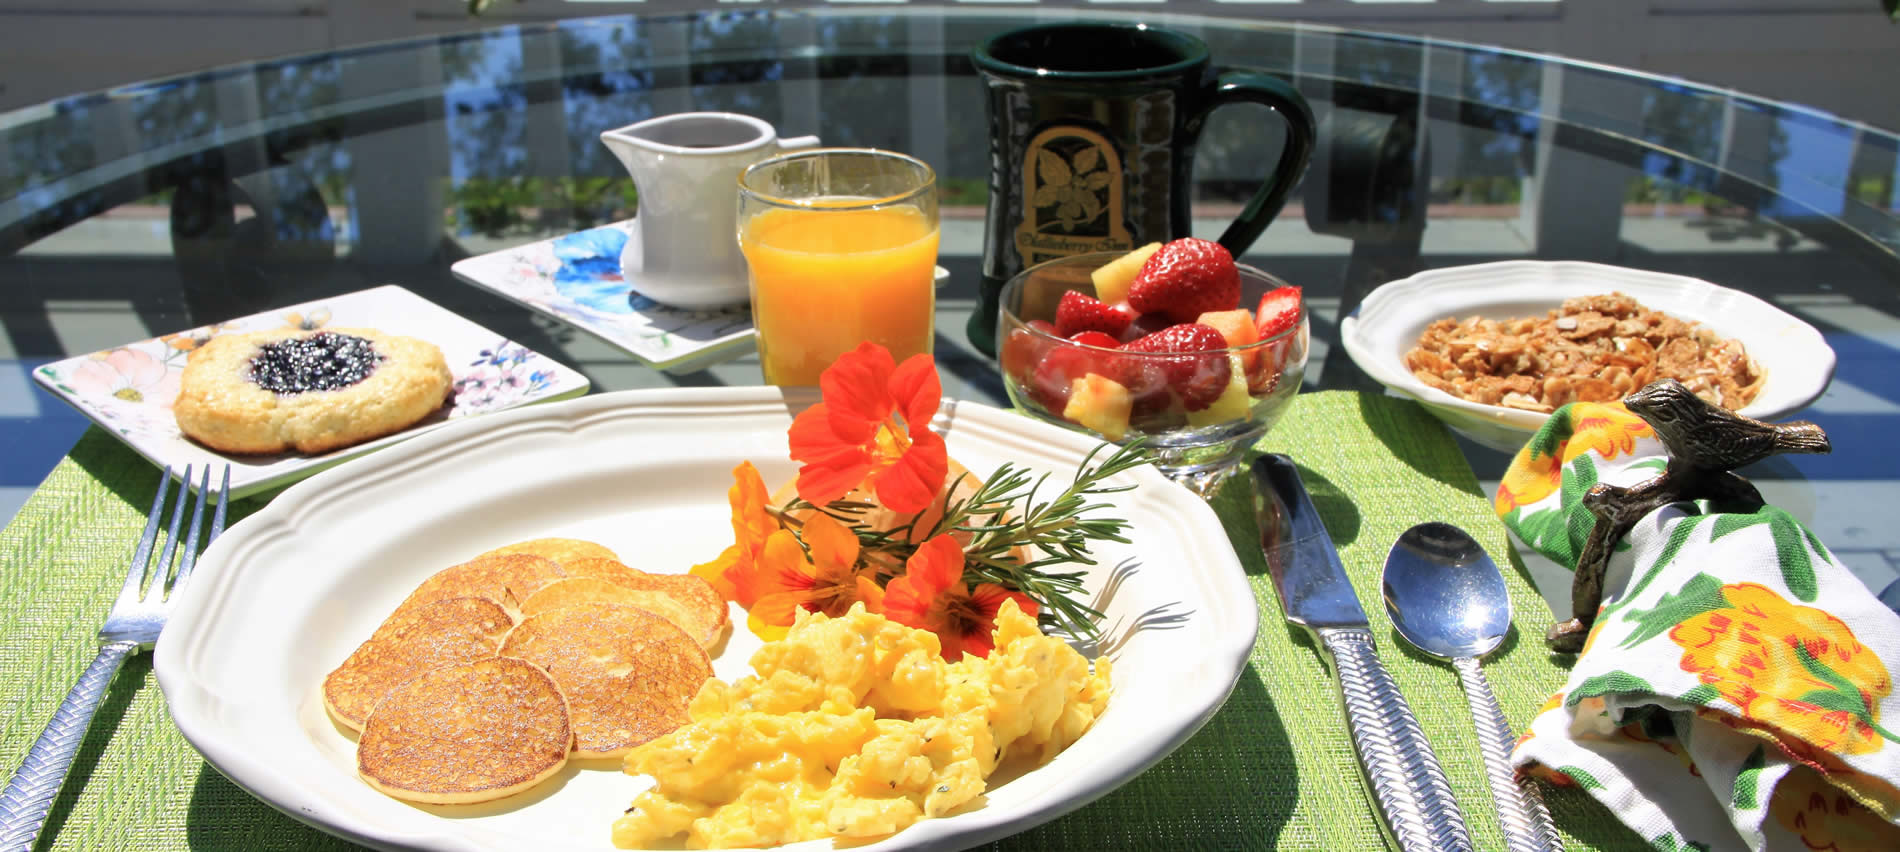 breakfast in outdoor setting cambria ca bed and breakfast boutique hotel